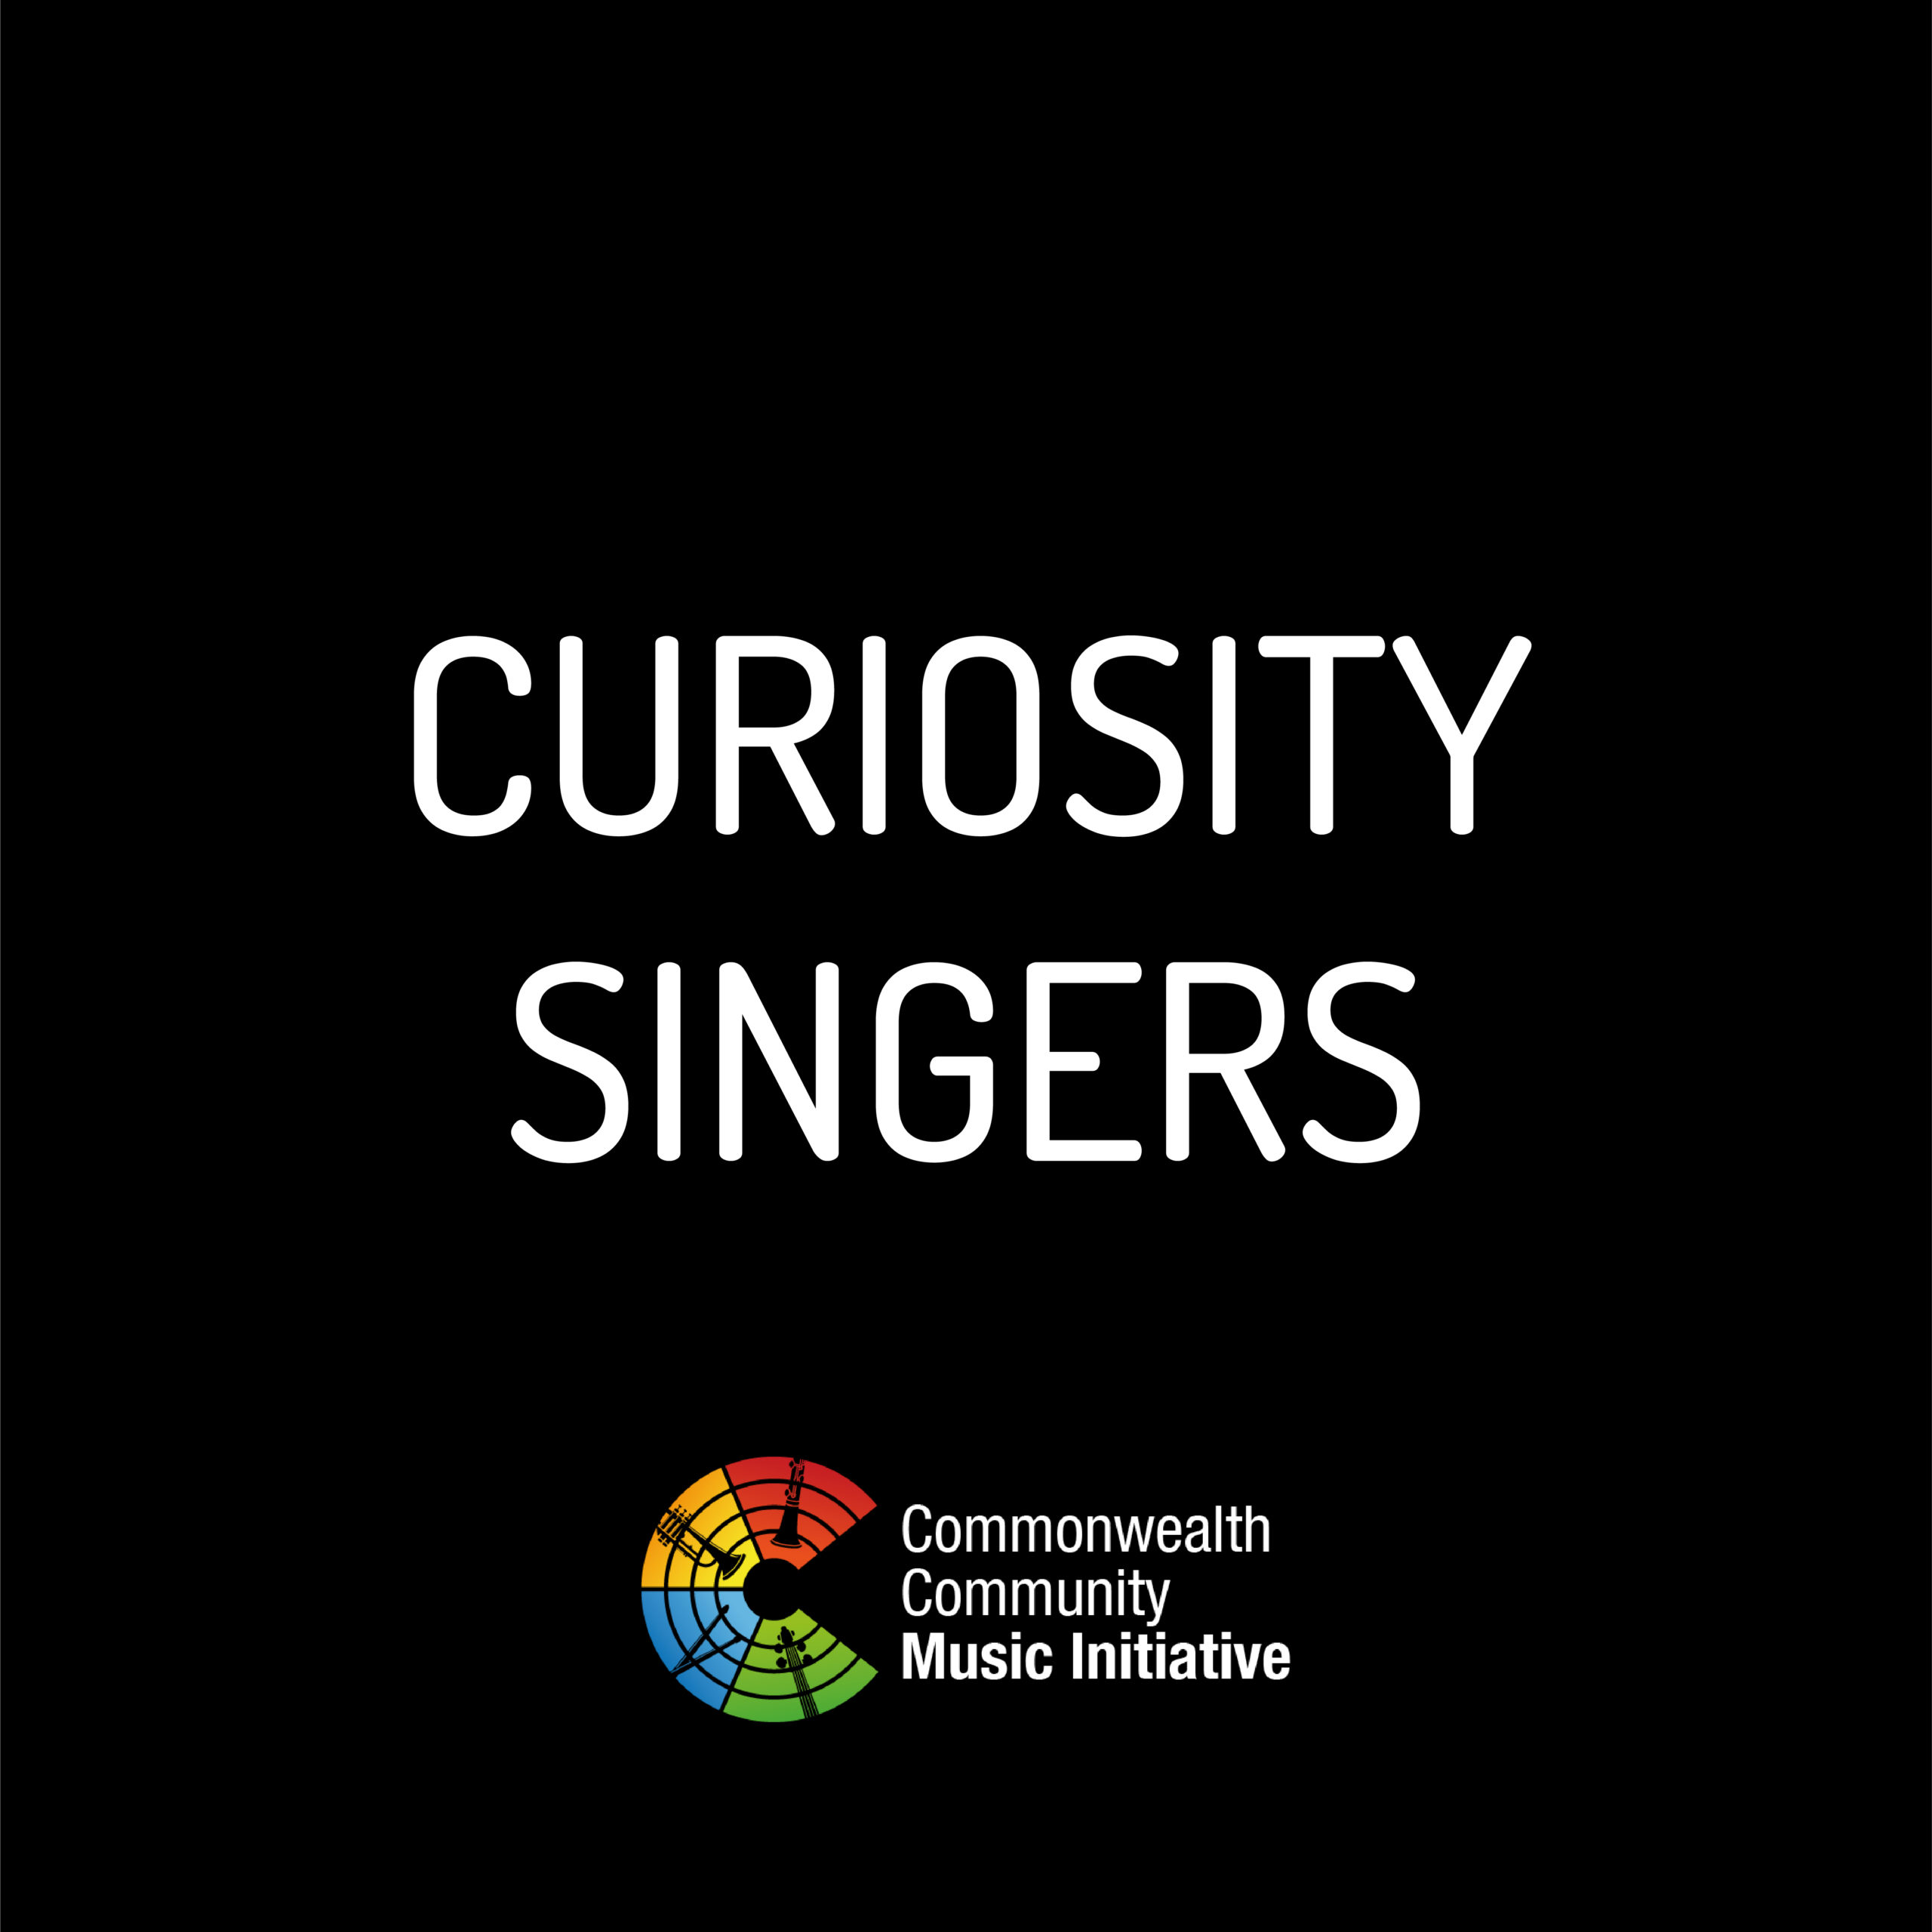 Commonwealth Community Music Initiative | Curiosity – Live Exhibition Weekend for Singers